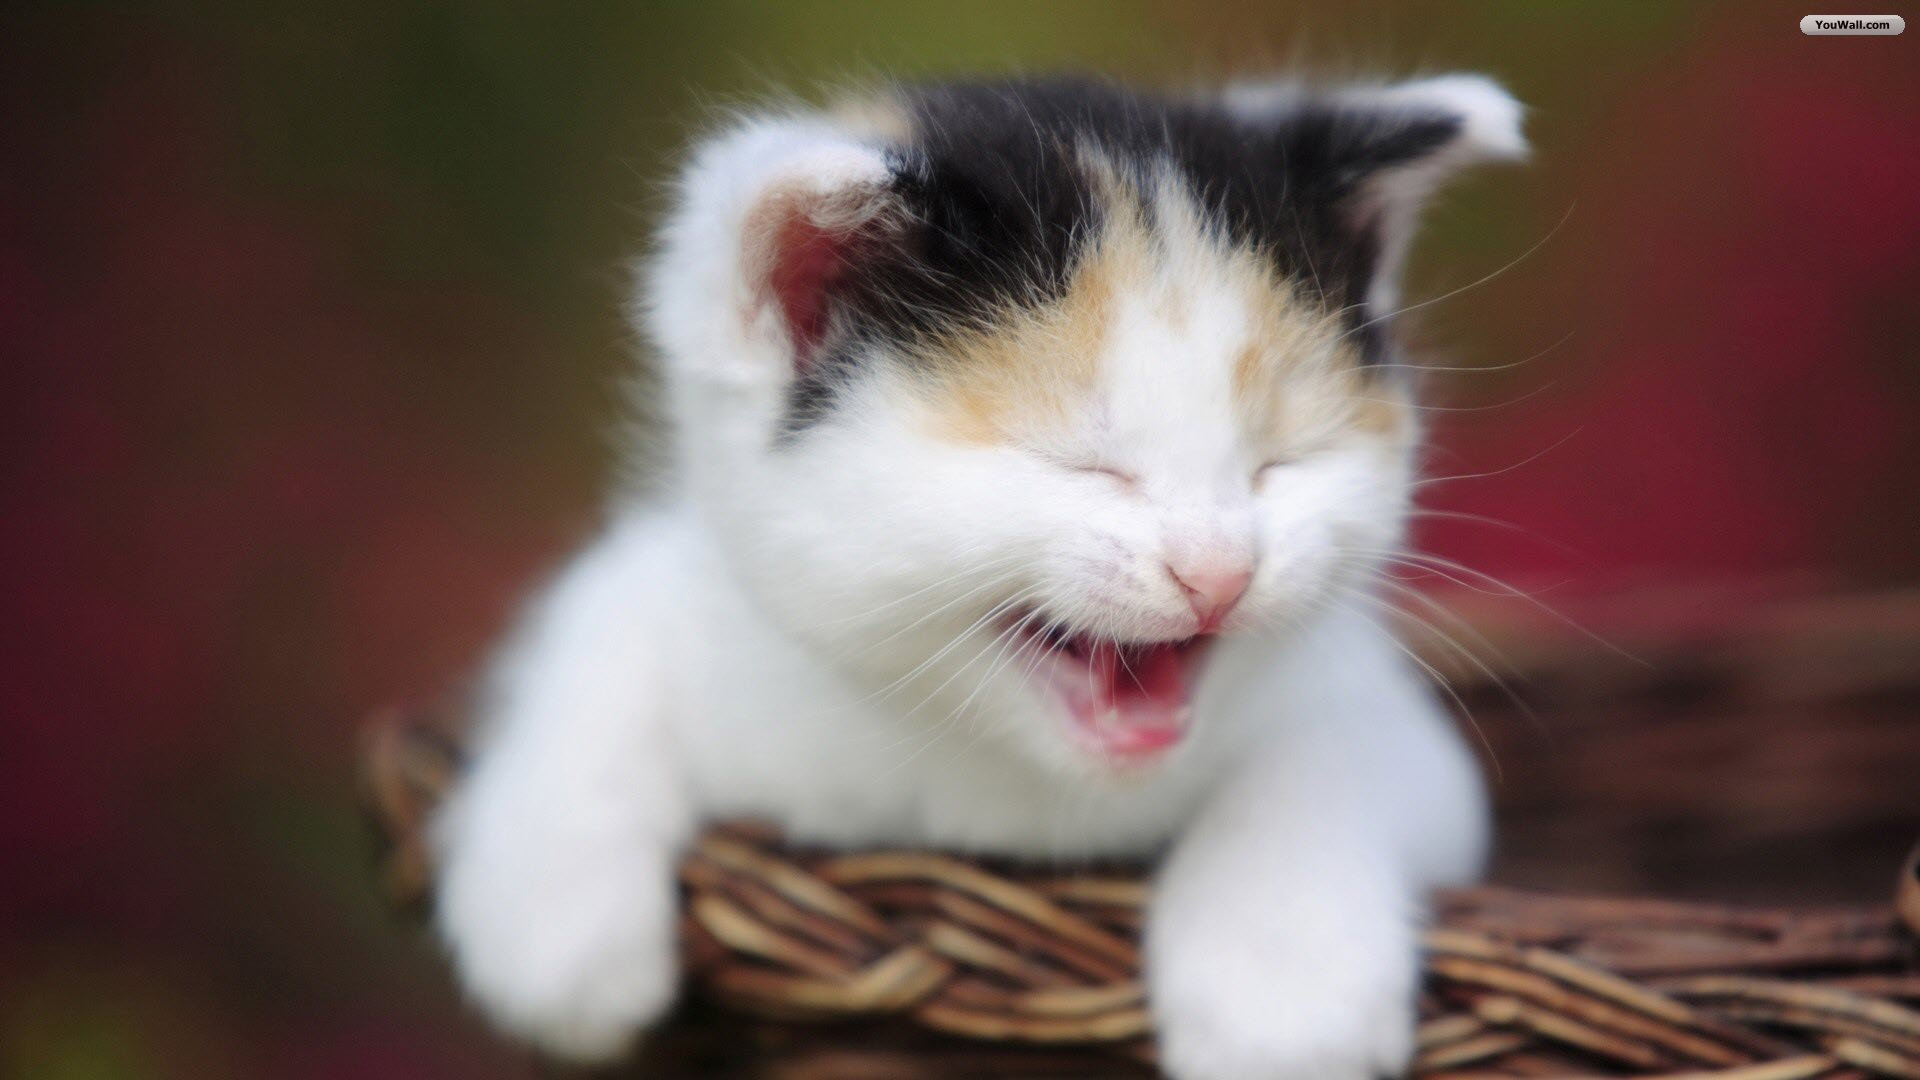 Laughing-Cat-Wallpaper-10